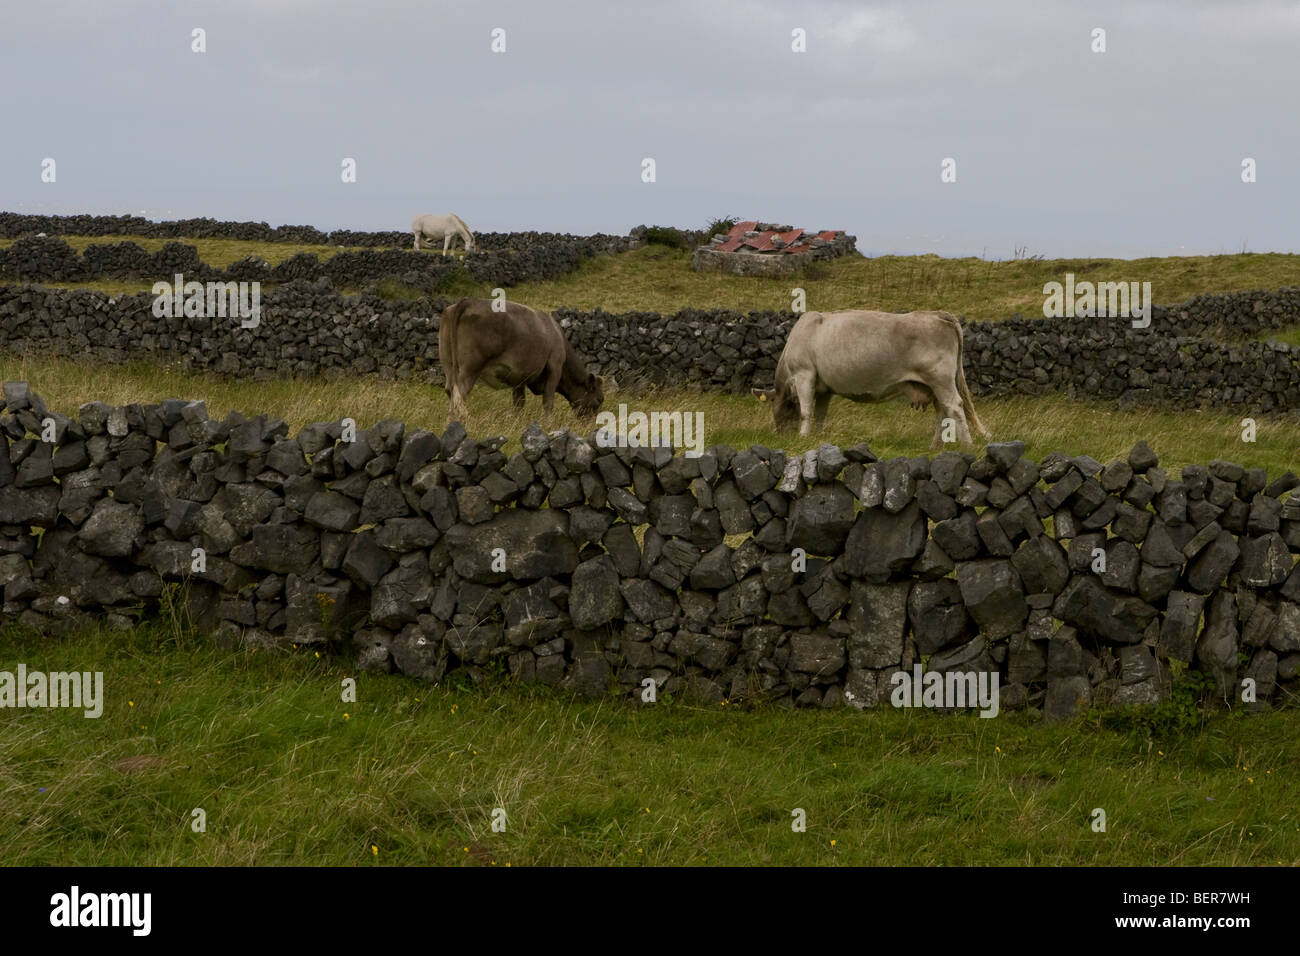 Cows in fields surrounded by traditional stonewalls, Inis Mor (Inismore) Island, Aran Islands, Co. Galway, Ireland - Stock Image